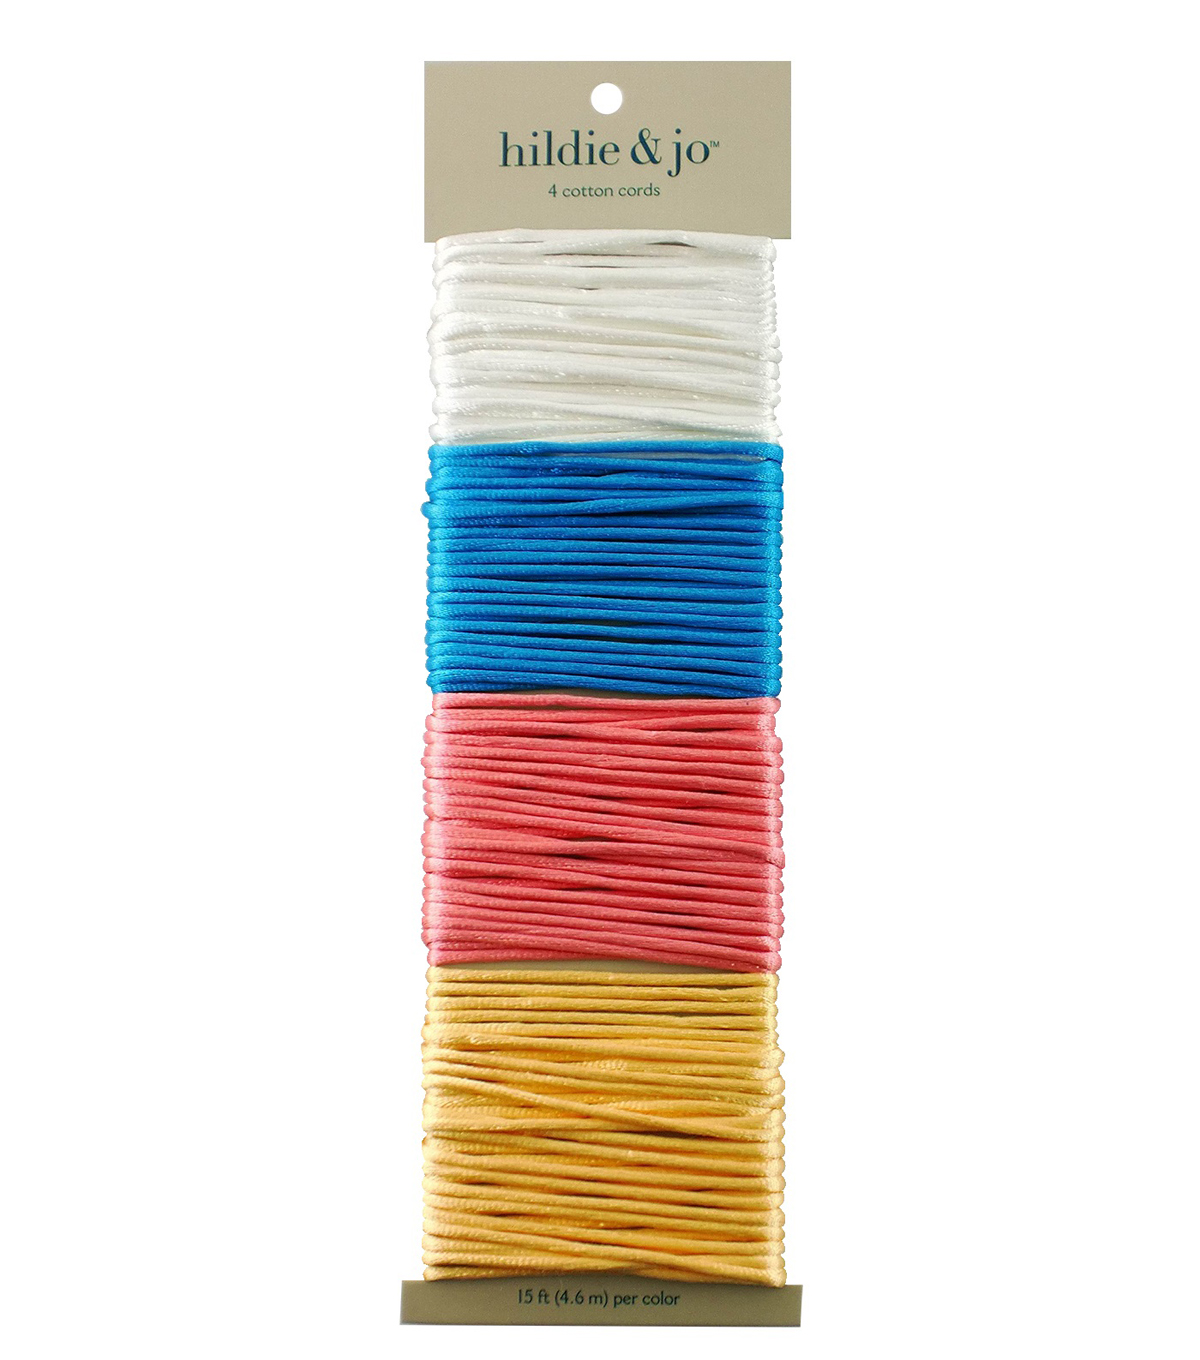 Jewelry Fundamentals Cords & More Silky Cord Variety Pack, Boardwalk